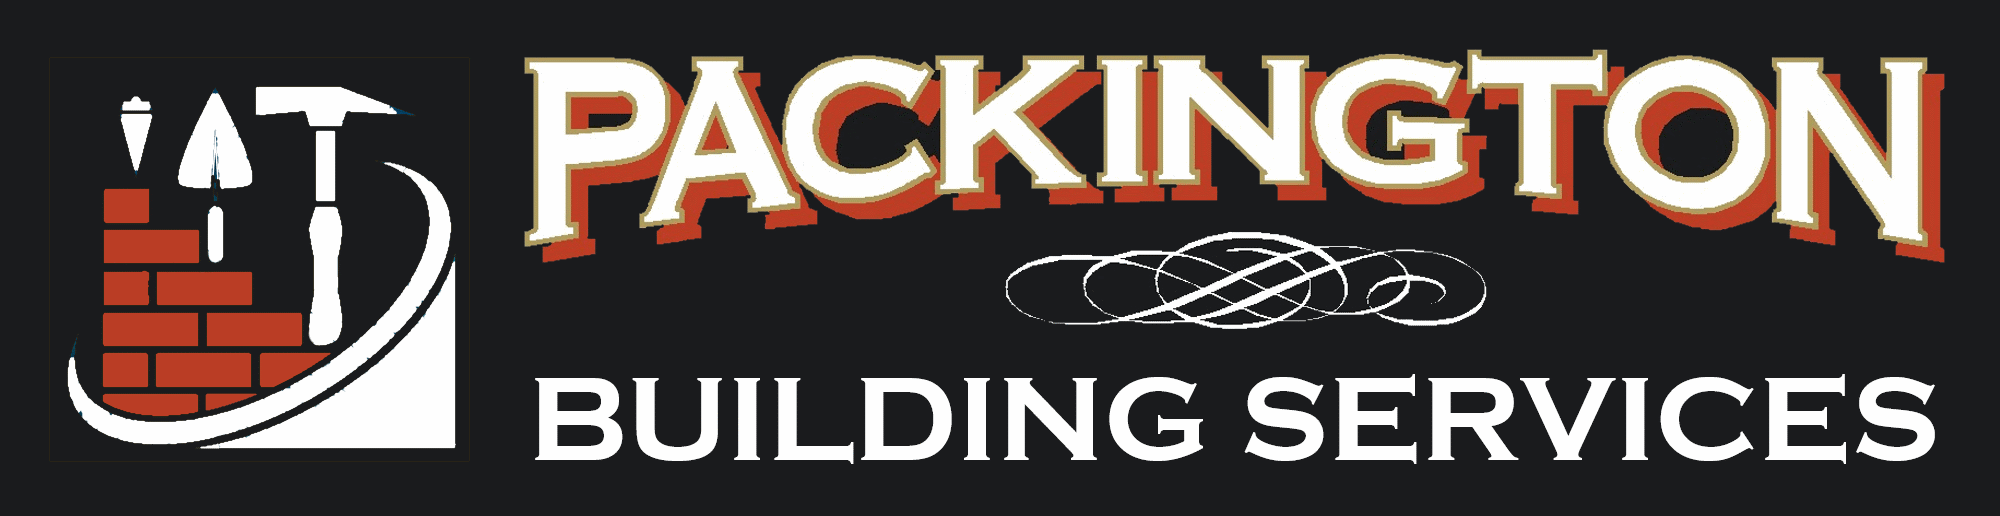 Packington Building Services The trusted builder for Burton on Trent Logo